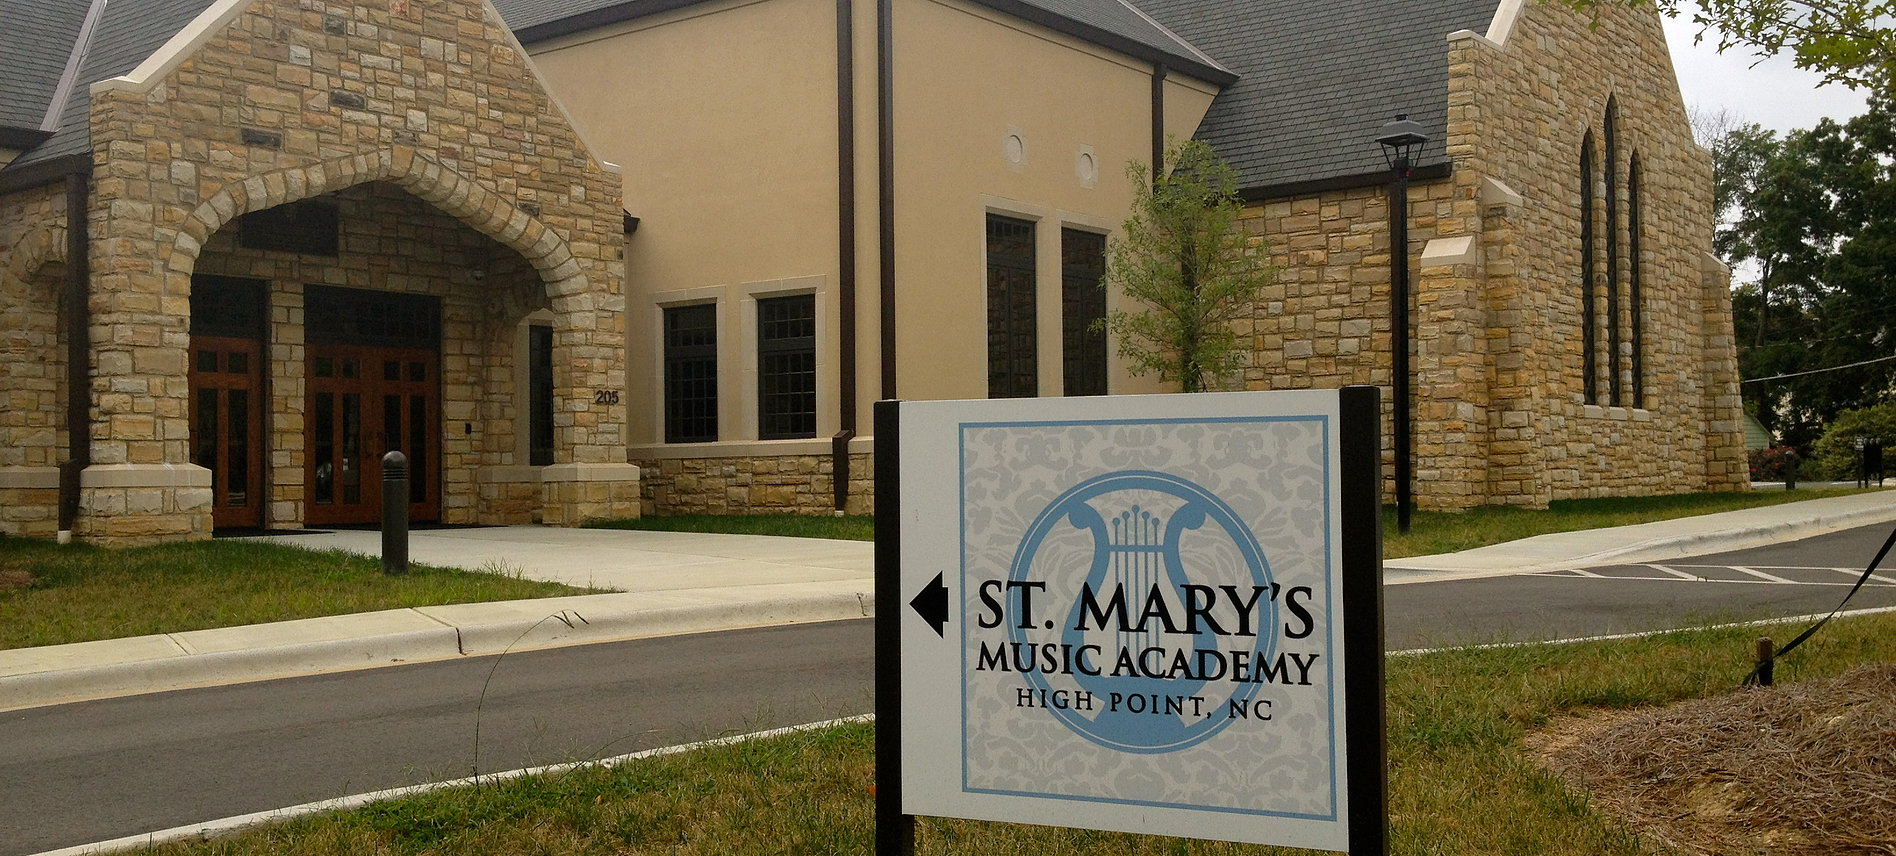 Recital at St. Mary's Music Academy